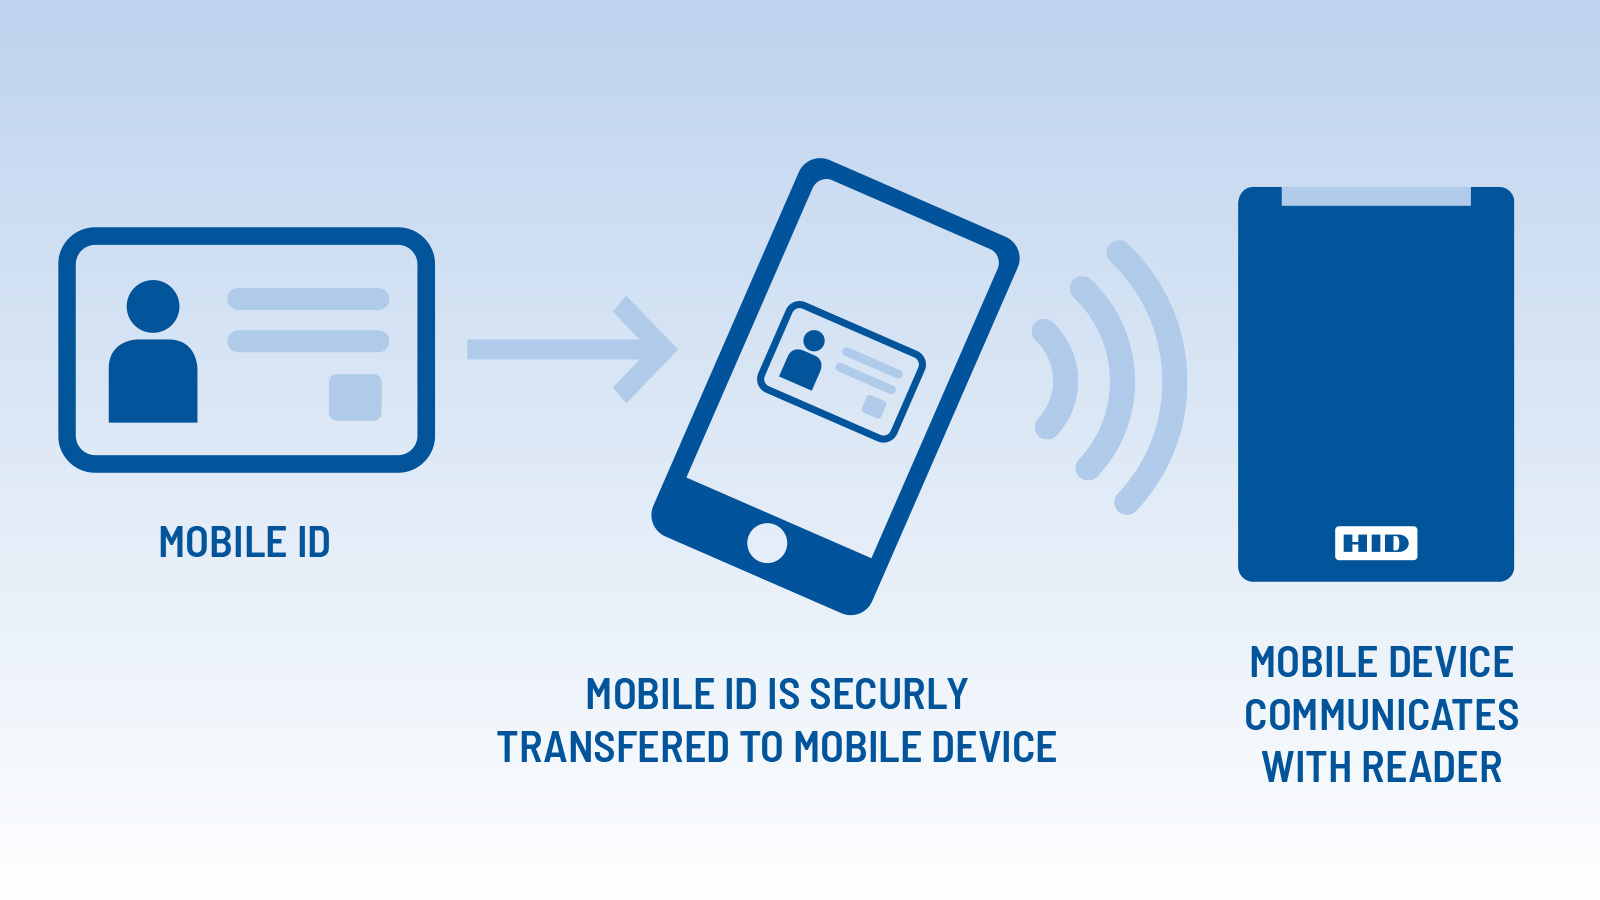 Mobile Access — Mobile ID Transferred to Device